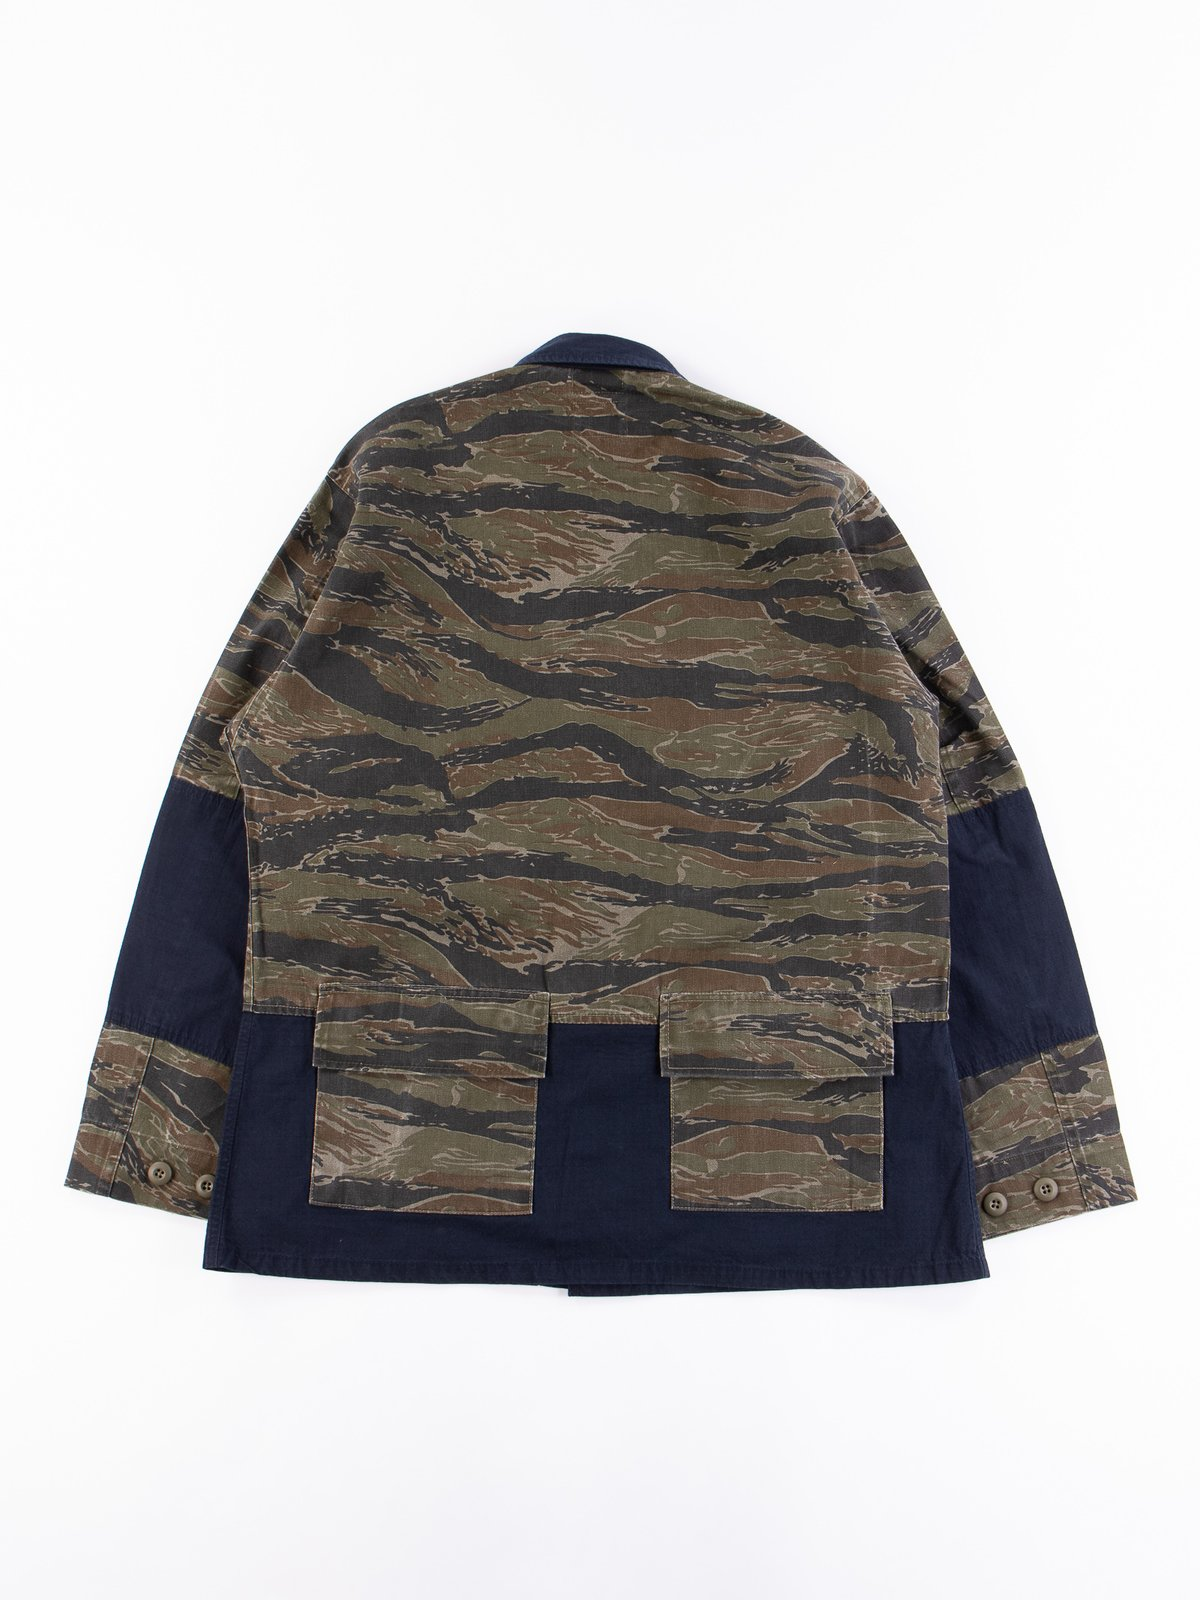 Reworks Camo/Navy Field Jacket - Image 6